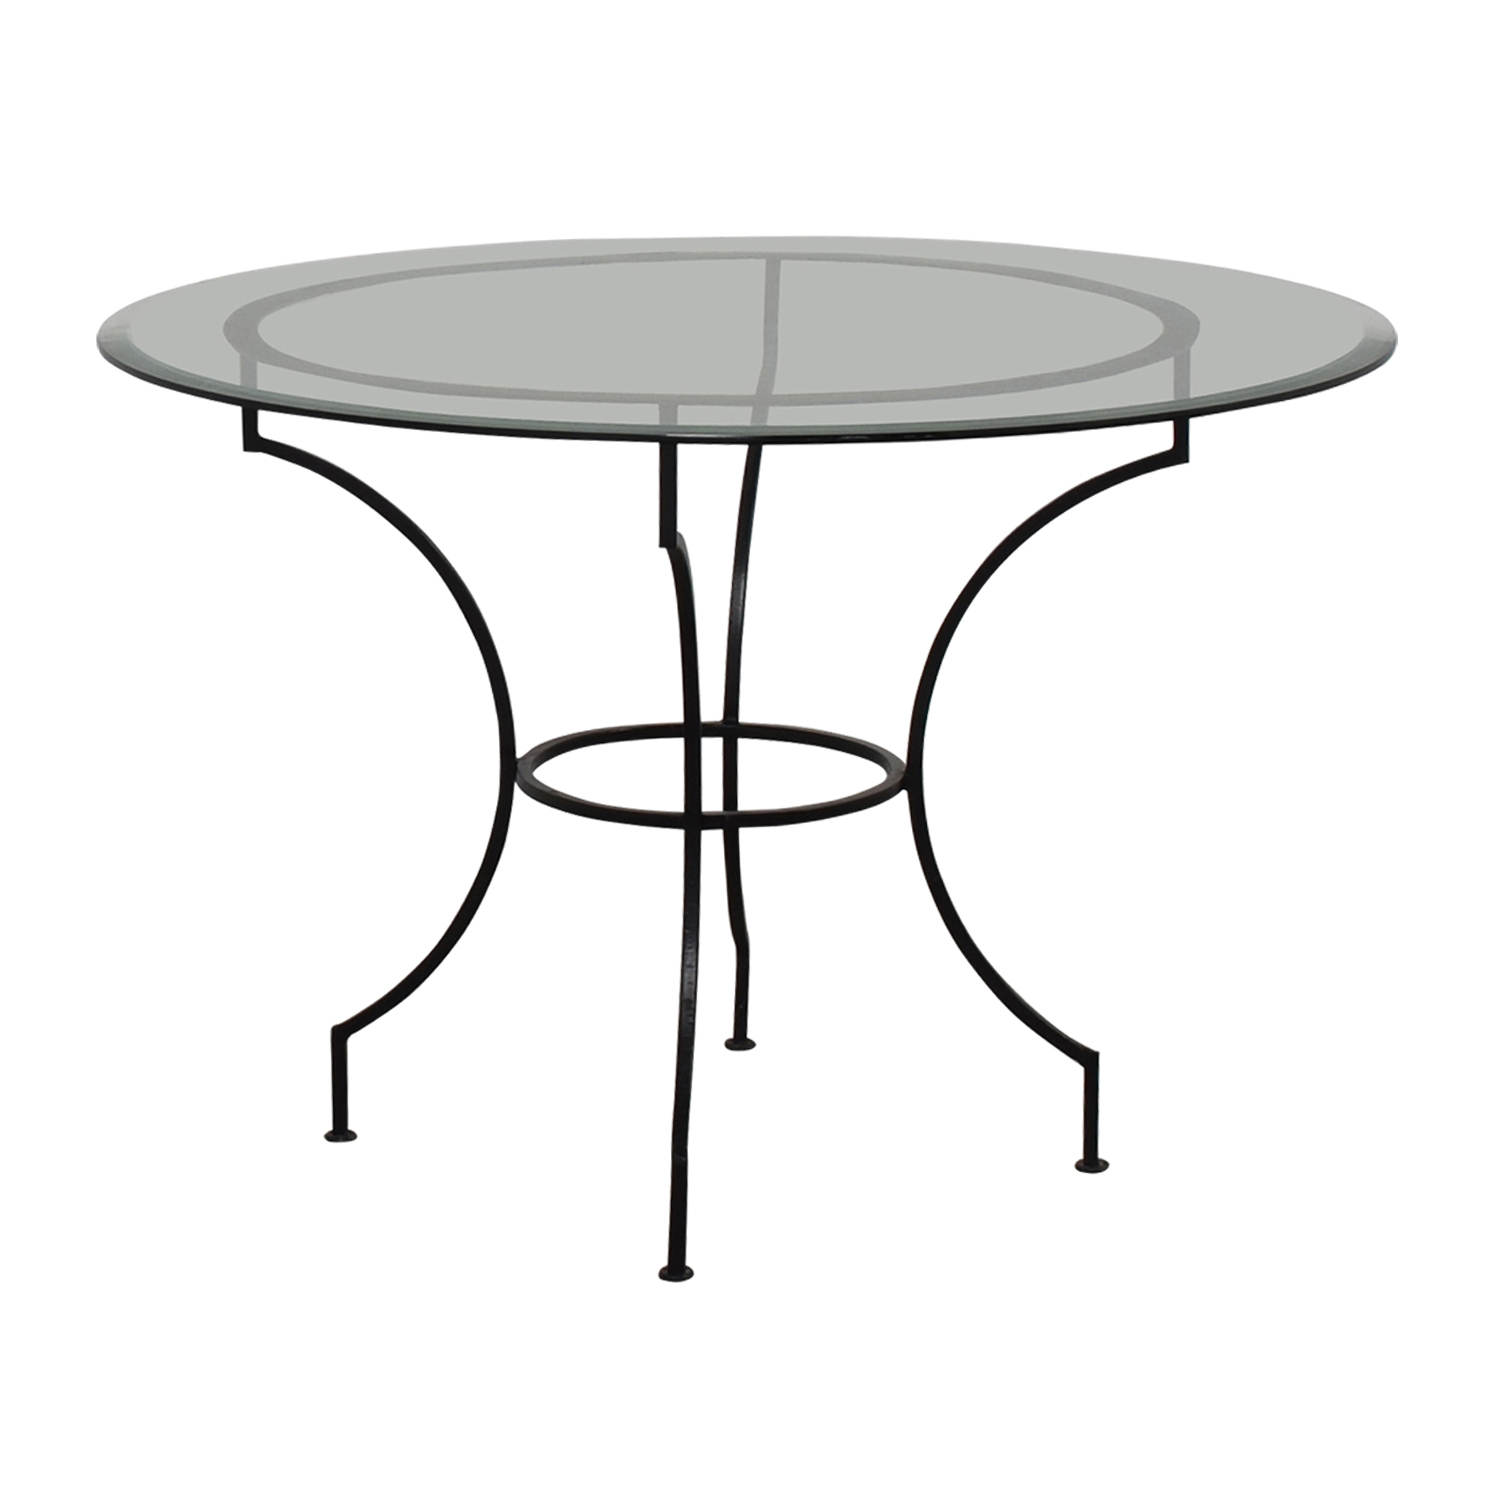 buy Pottery Barn Round Glass and Iron Base Table Pottery Barn Dinner Tables